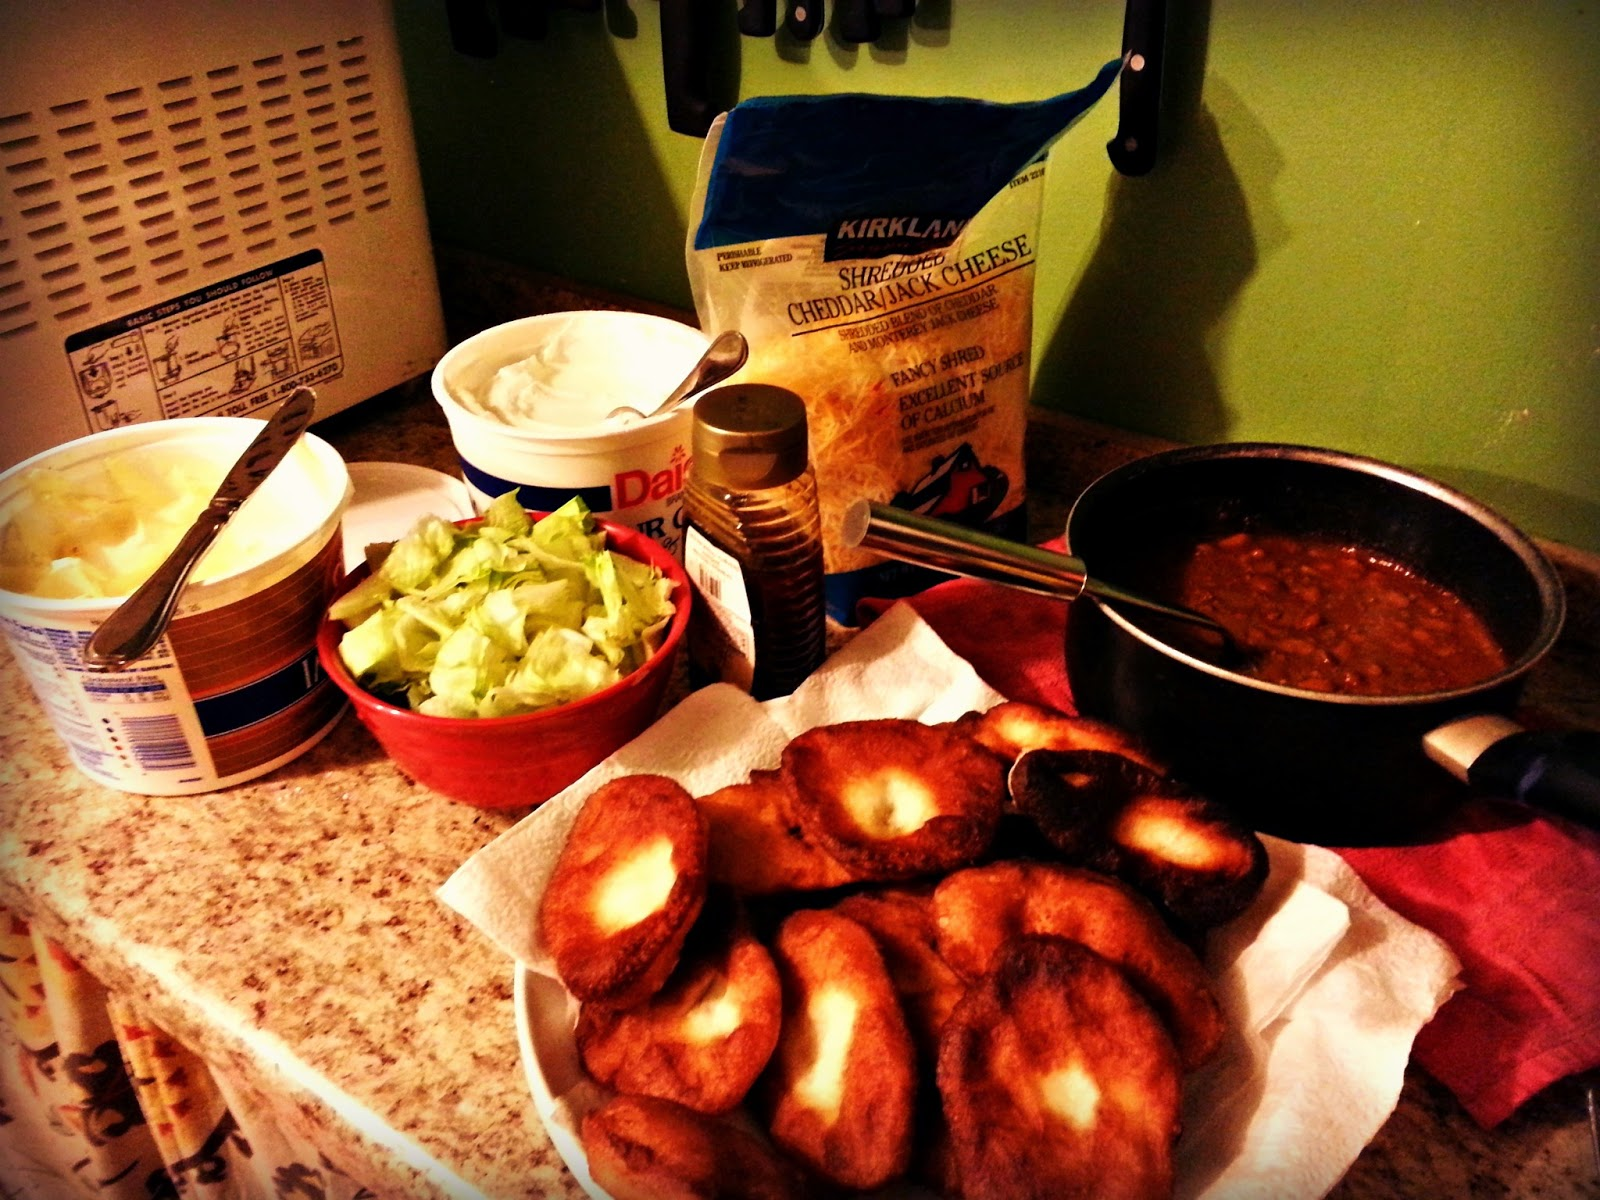 Family Meals on a Budget: Week 1 & 2 Chili and Fried Dough